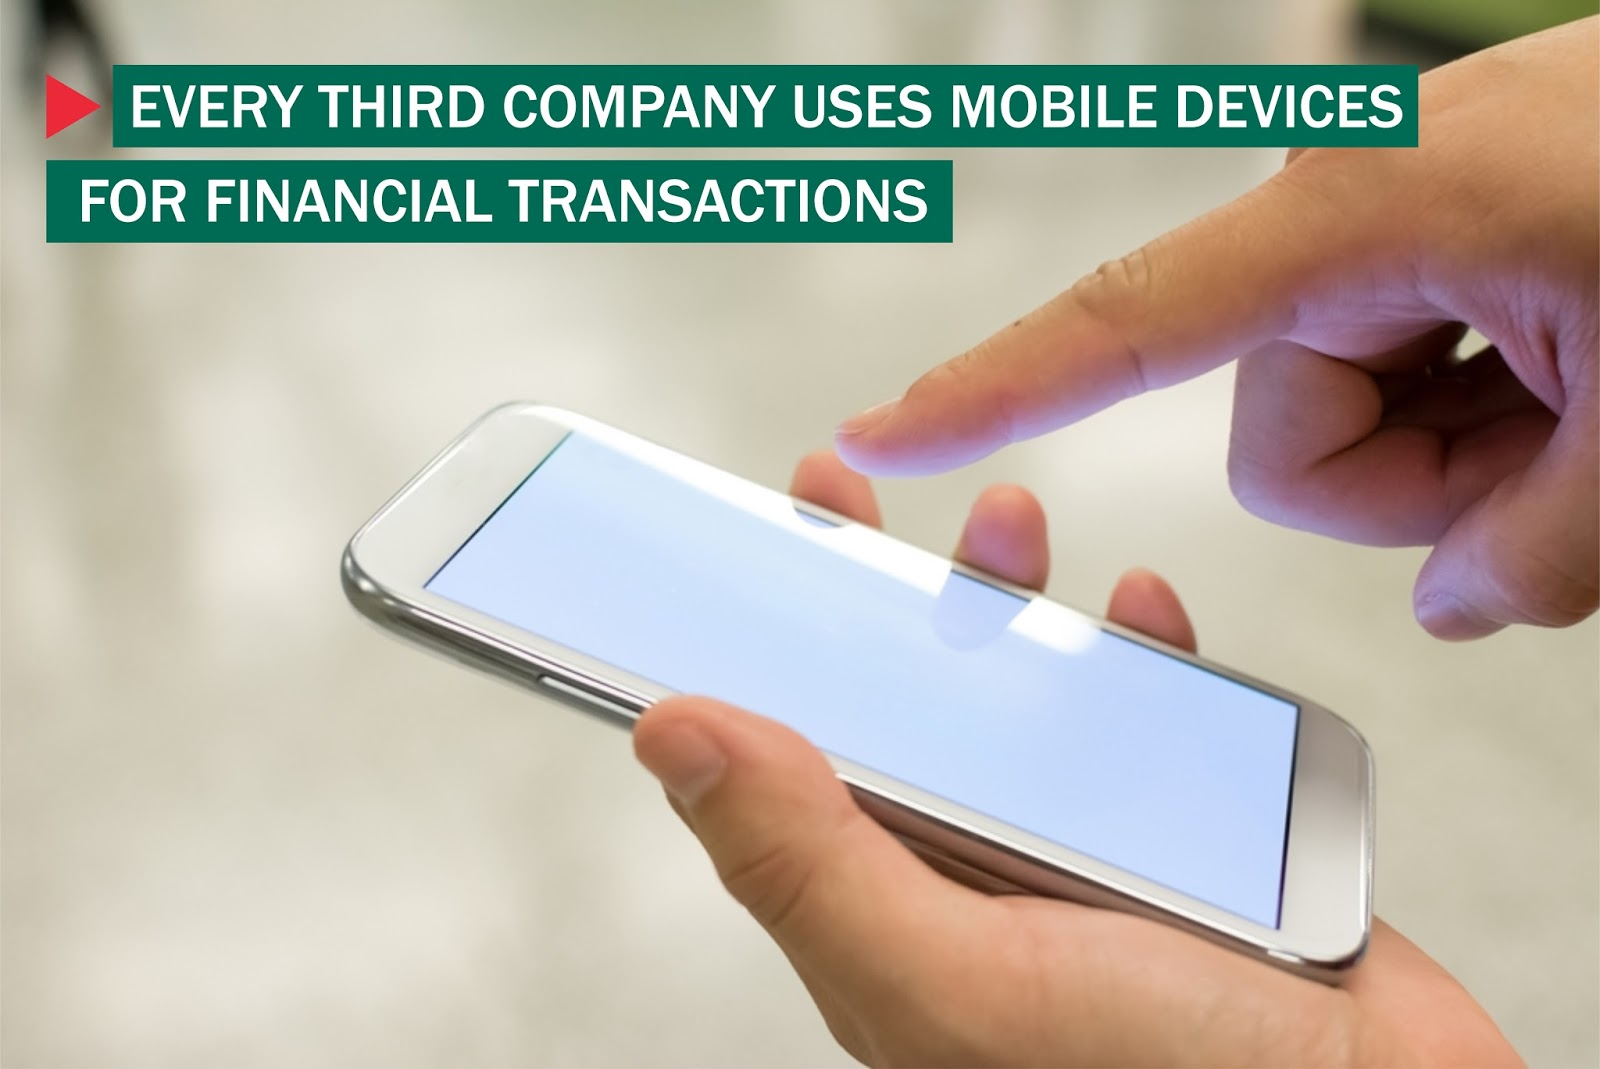 Every Third Company Uses Mobile Devices for Financial Transactions